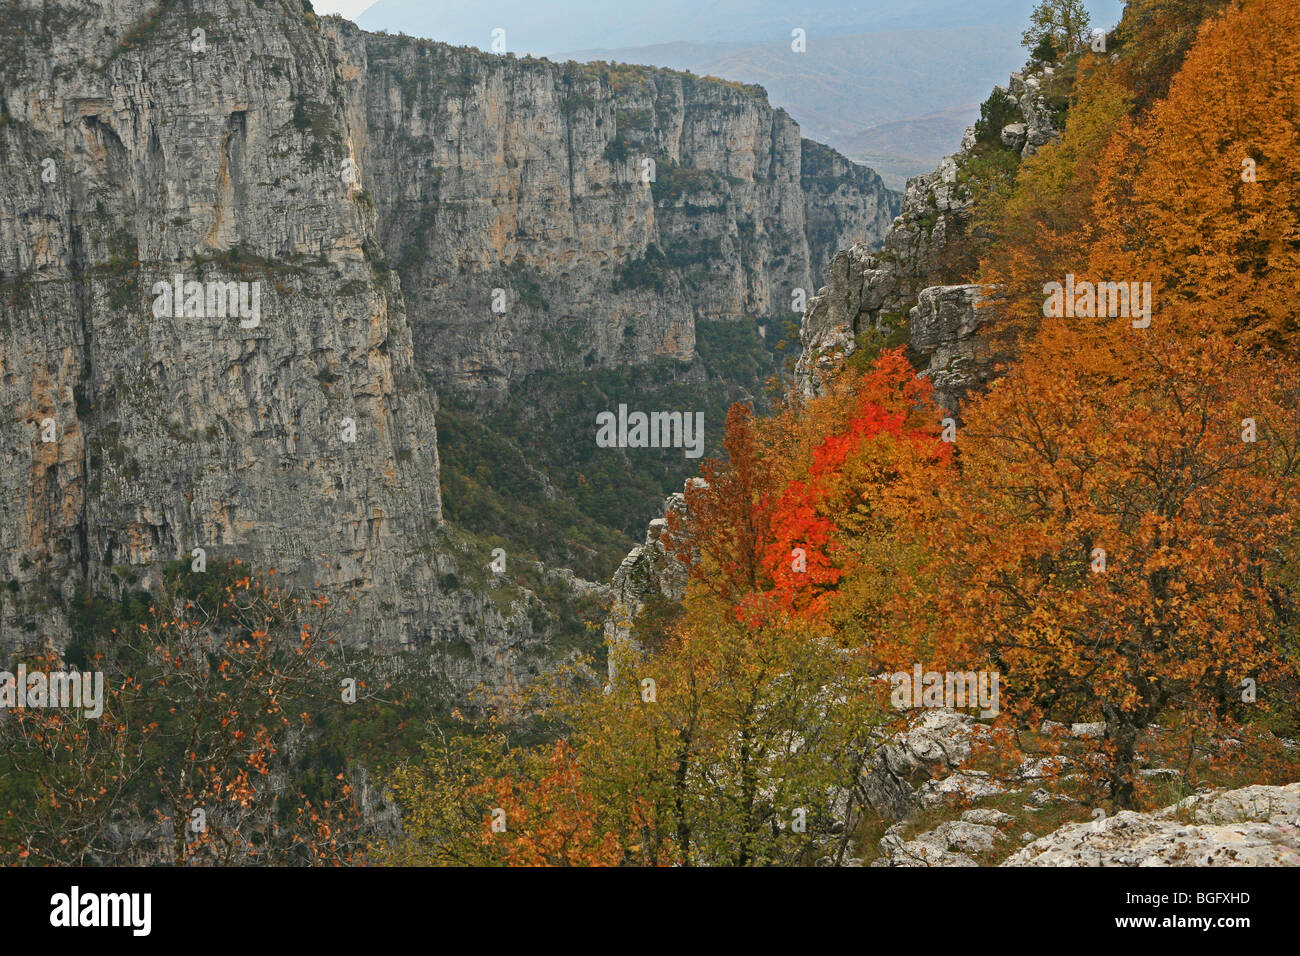 griechischen b ume im herbst in die vikos schlucht pindos gebirge zagoria griechenland stockfoto. Black Bedroom Furniture Sets. Home Design Ideas